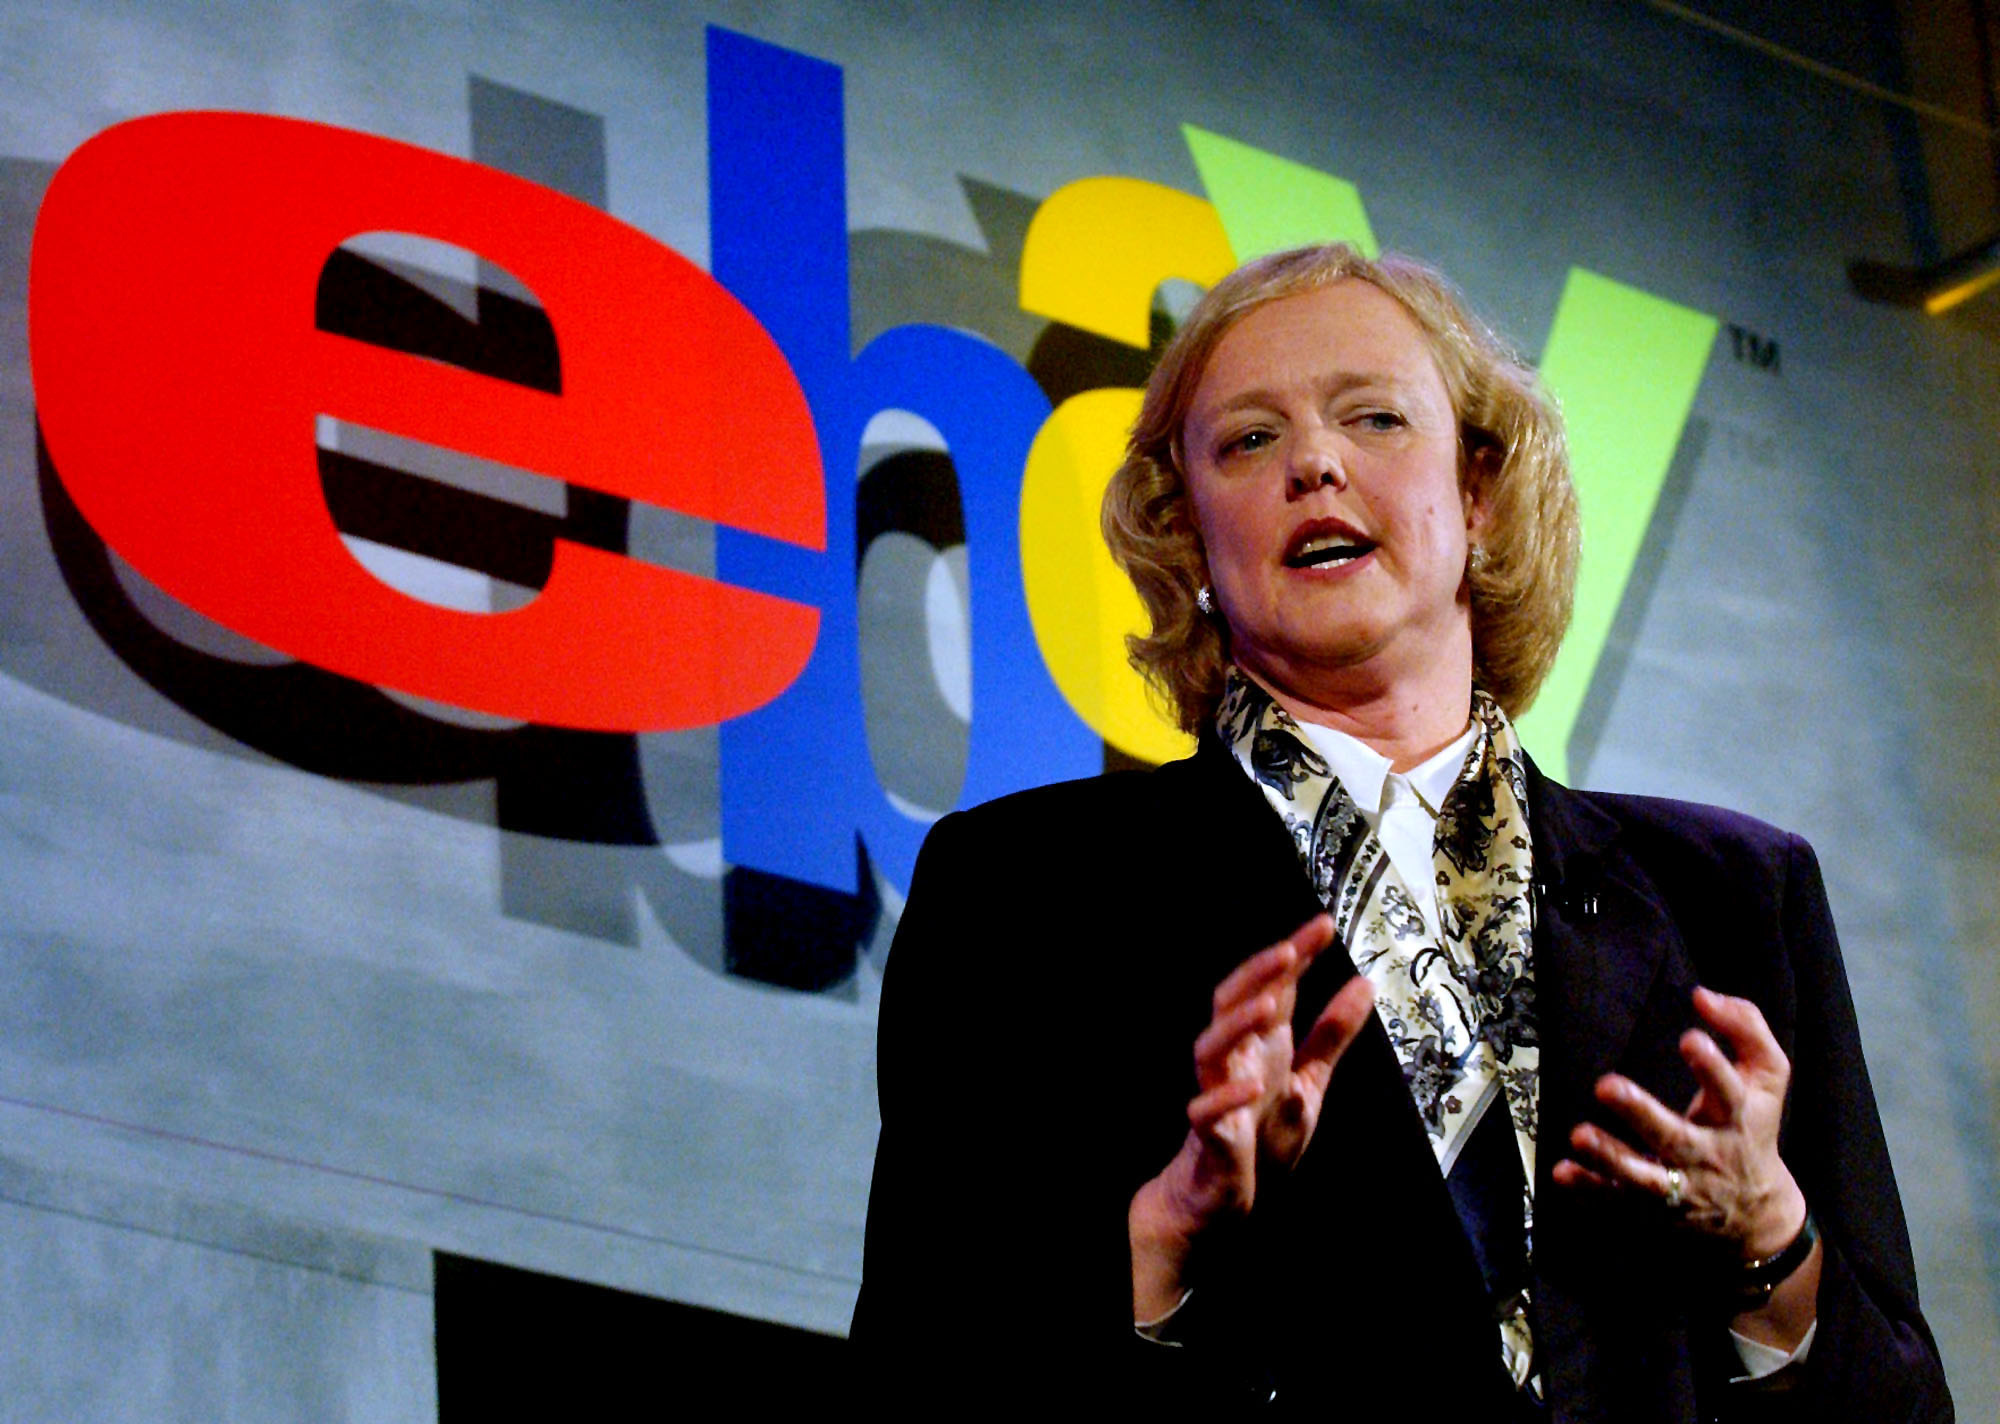 meg whitman at ebay 24012018  meg whitman didn't get the top job at uber, but she has secured a new spot at media mogul jeffrey katzenberg's mobile content start-up newtv.